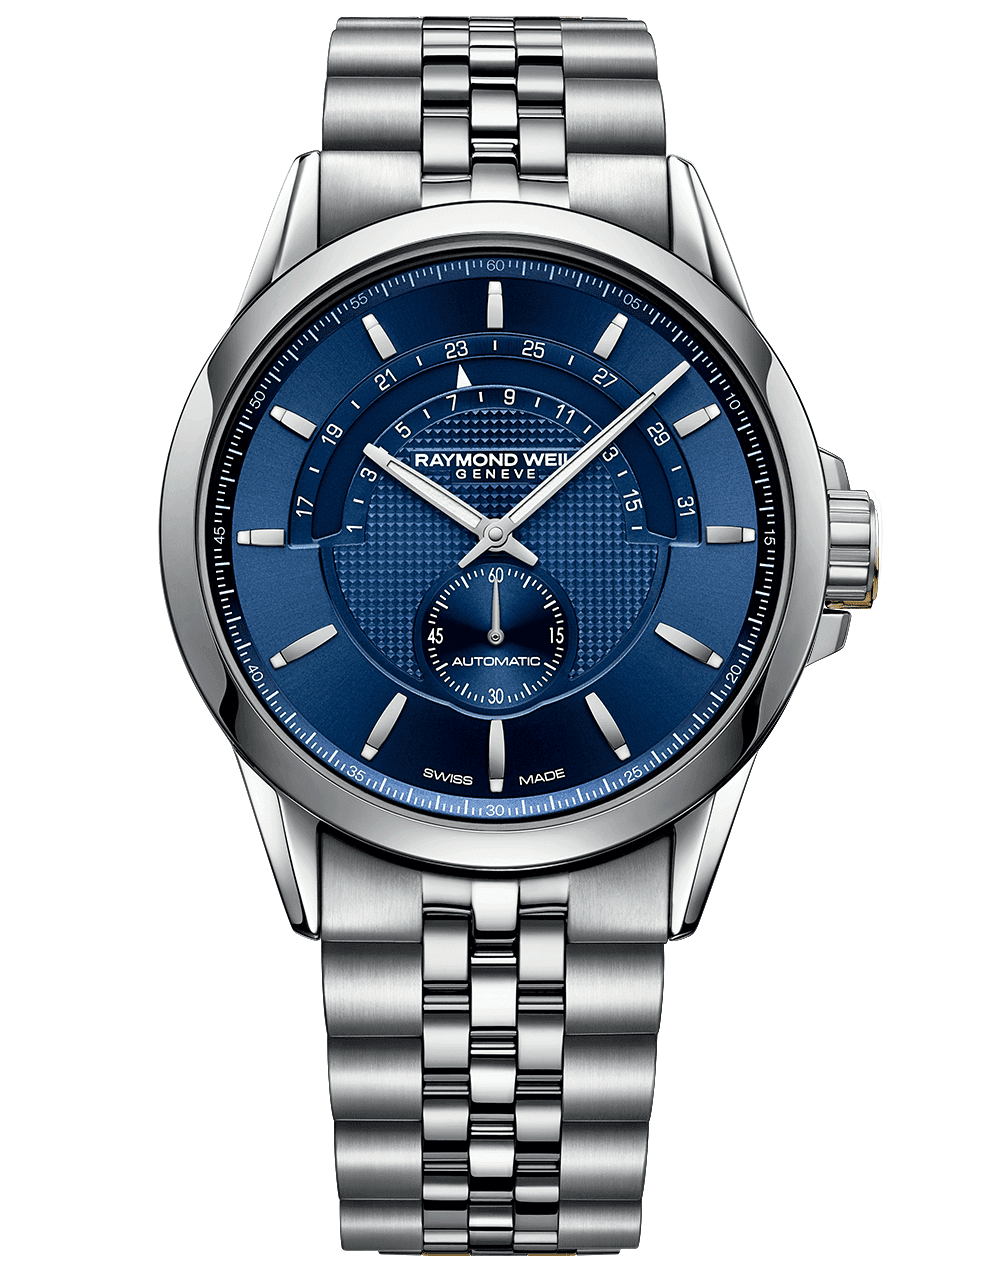 RAYMOND WEIL Freelancer Men's Blue Dial Half-moon Swiss Luxury Watch